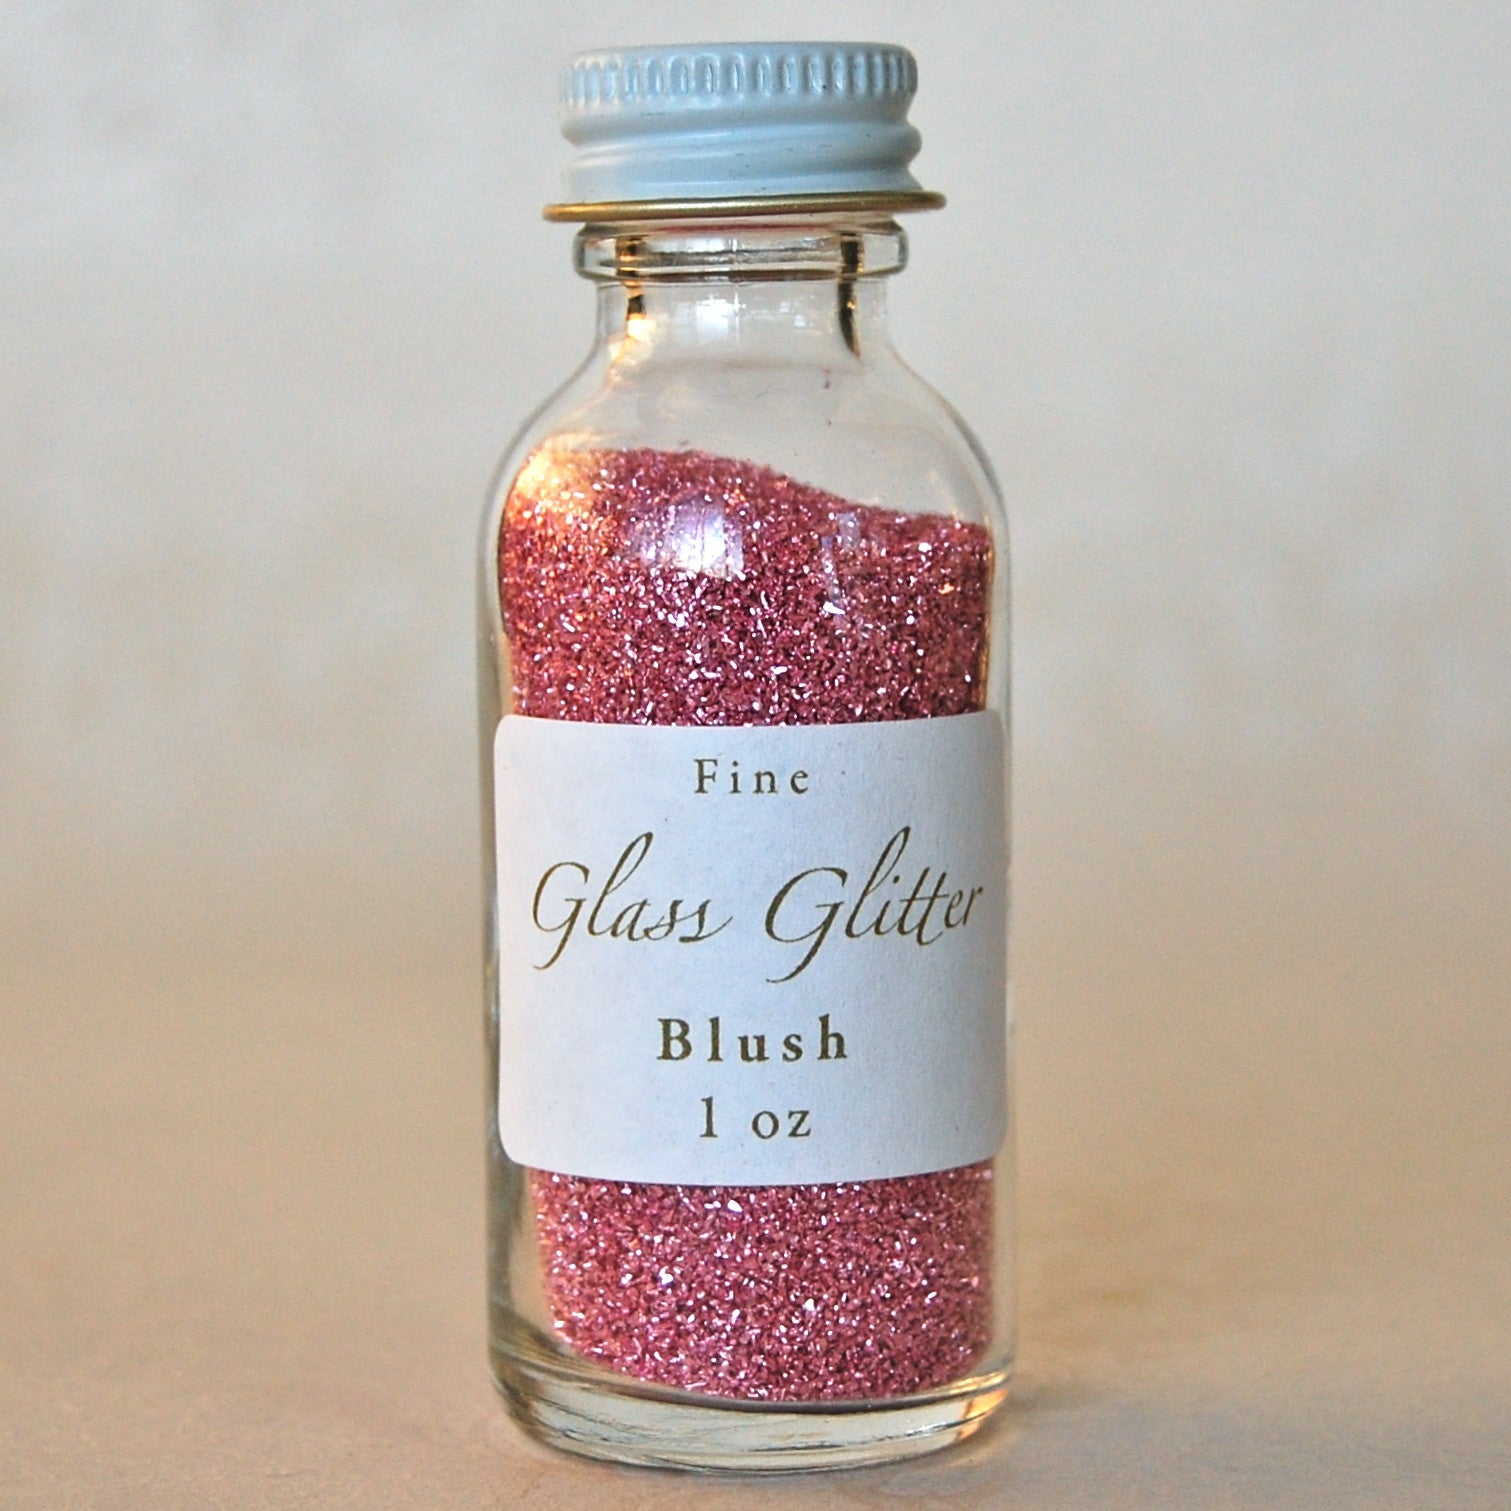 Blush-Pink-Glass-Glitter-Bottle